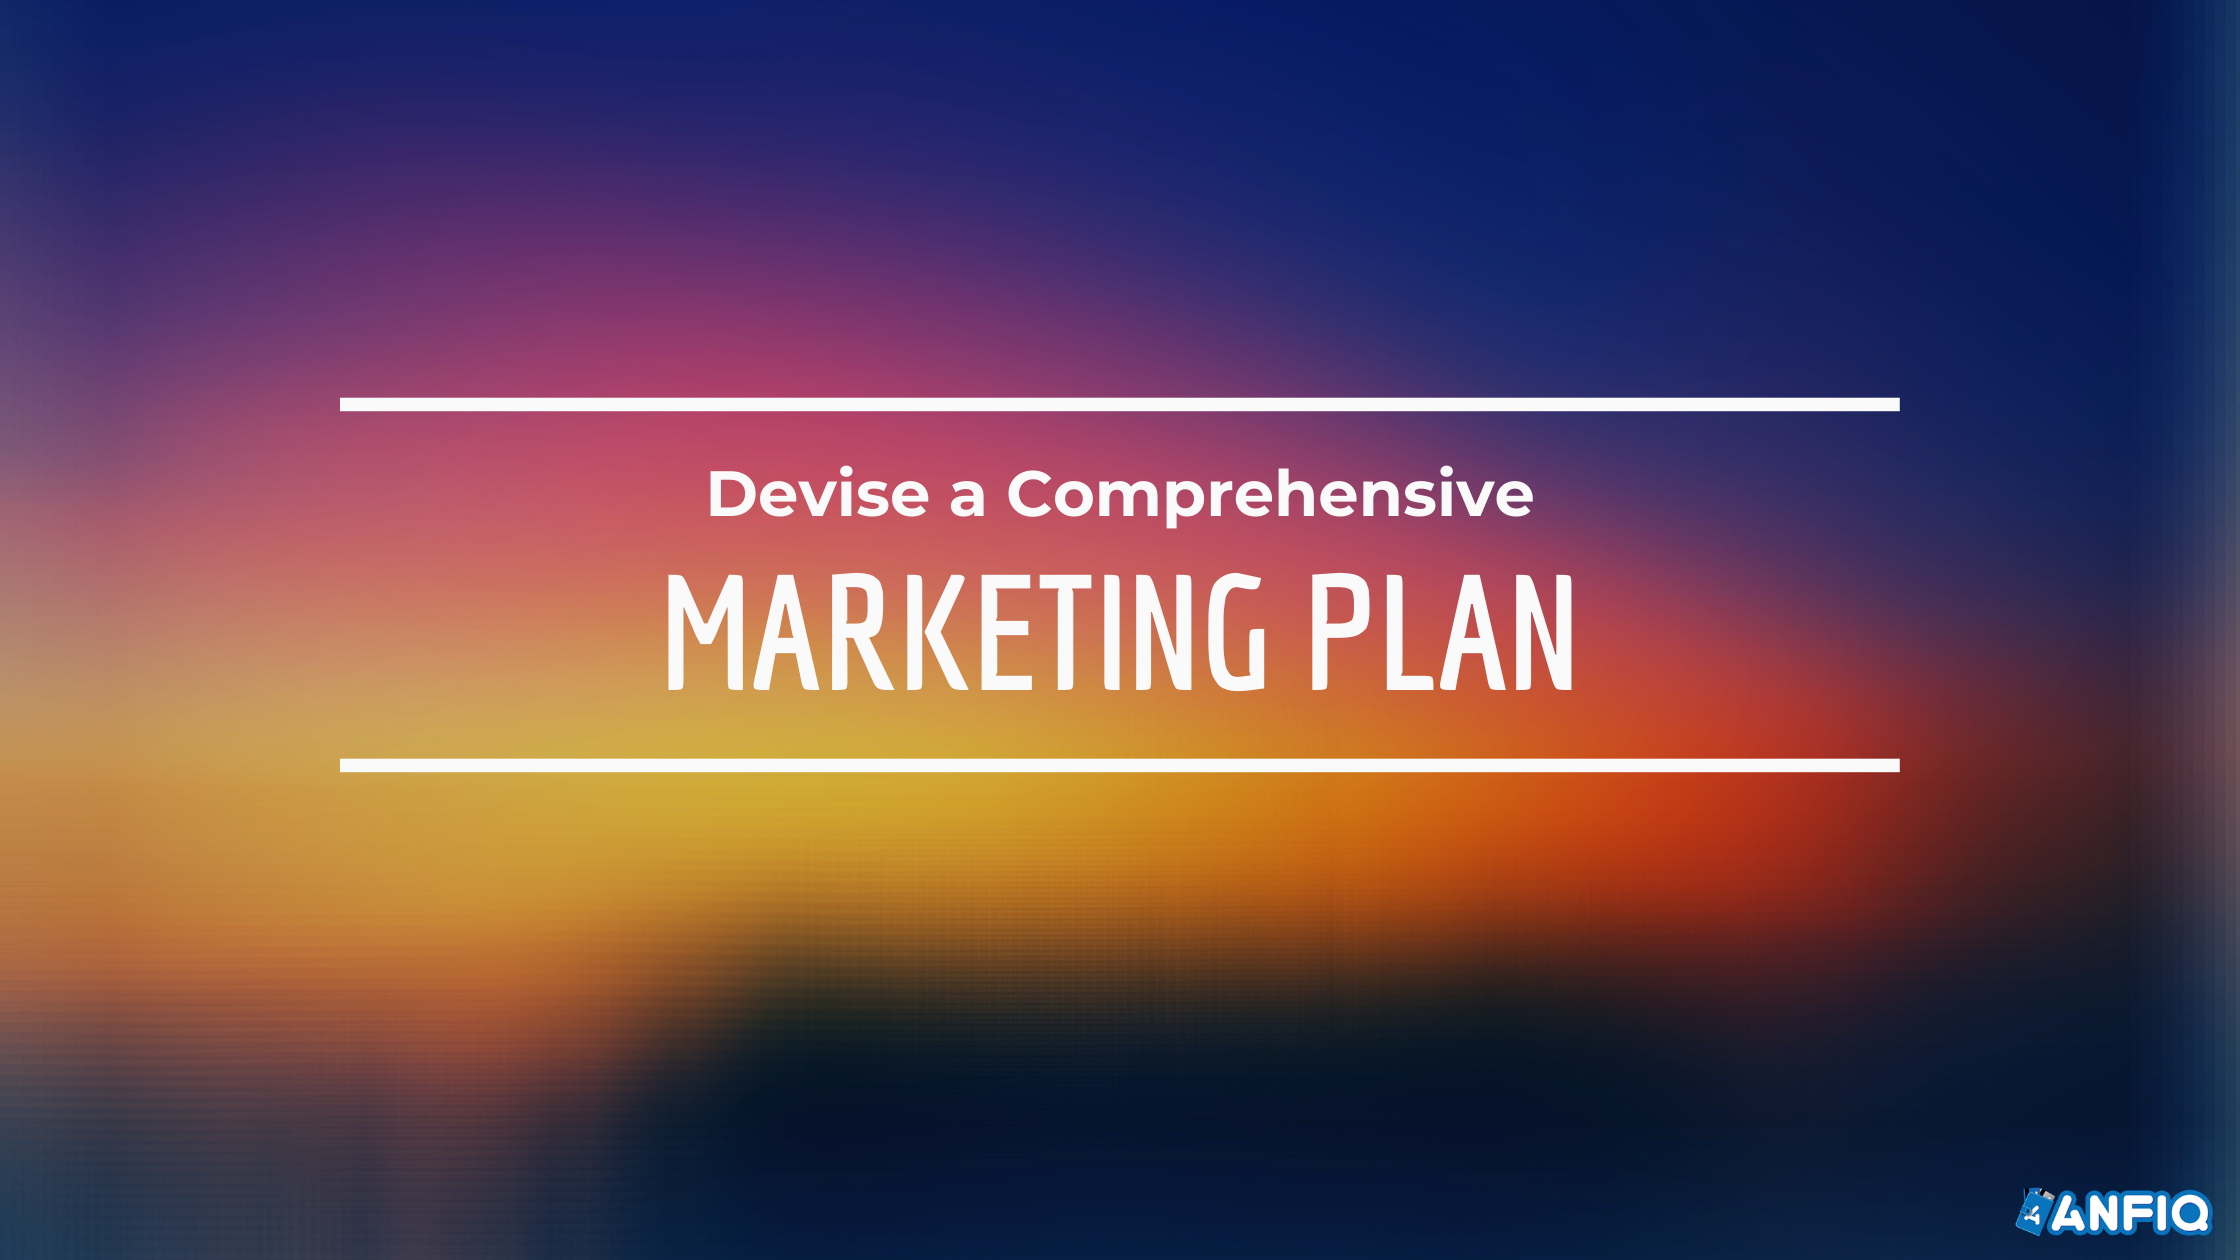 Devise a Comprehensive Marketing Plan